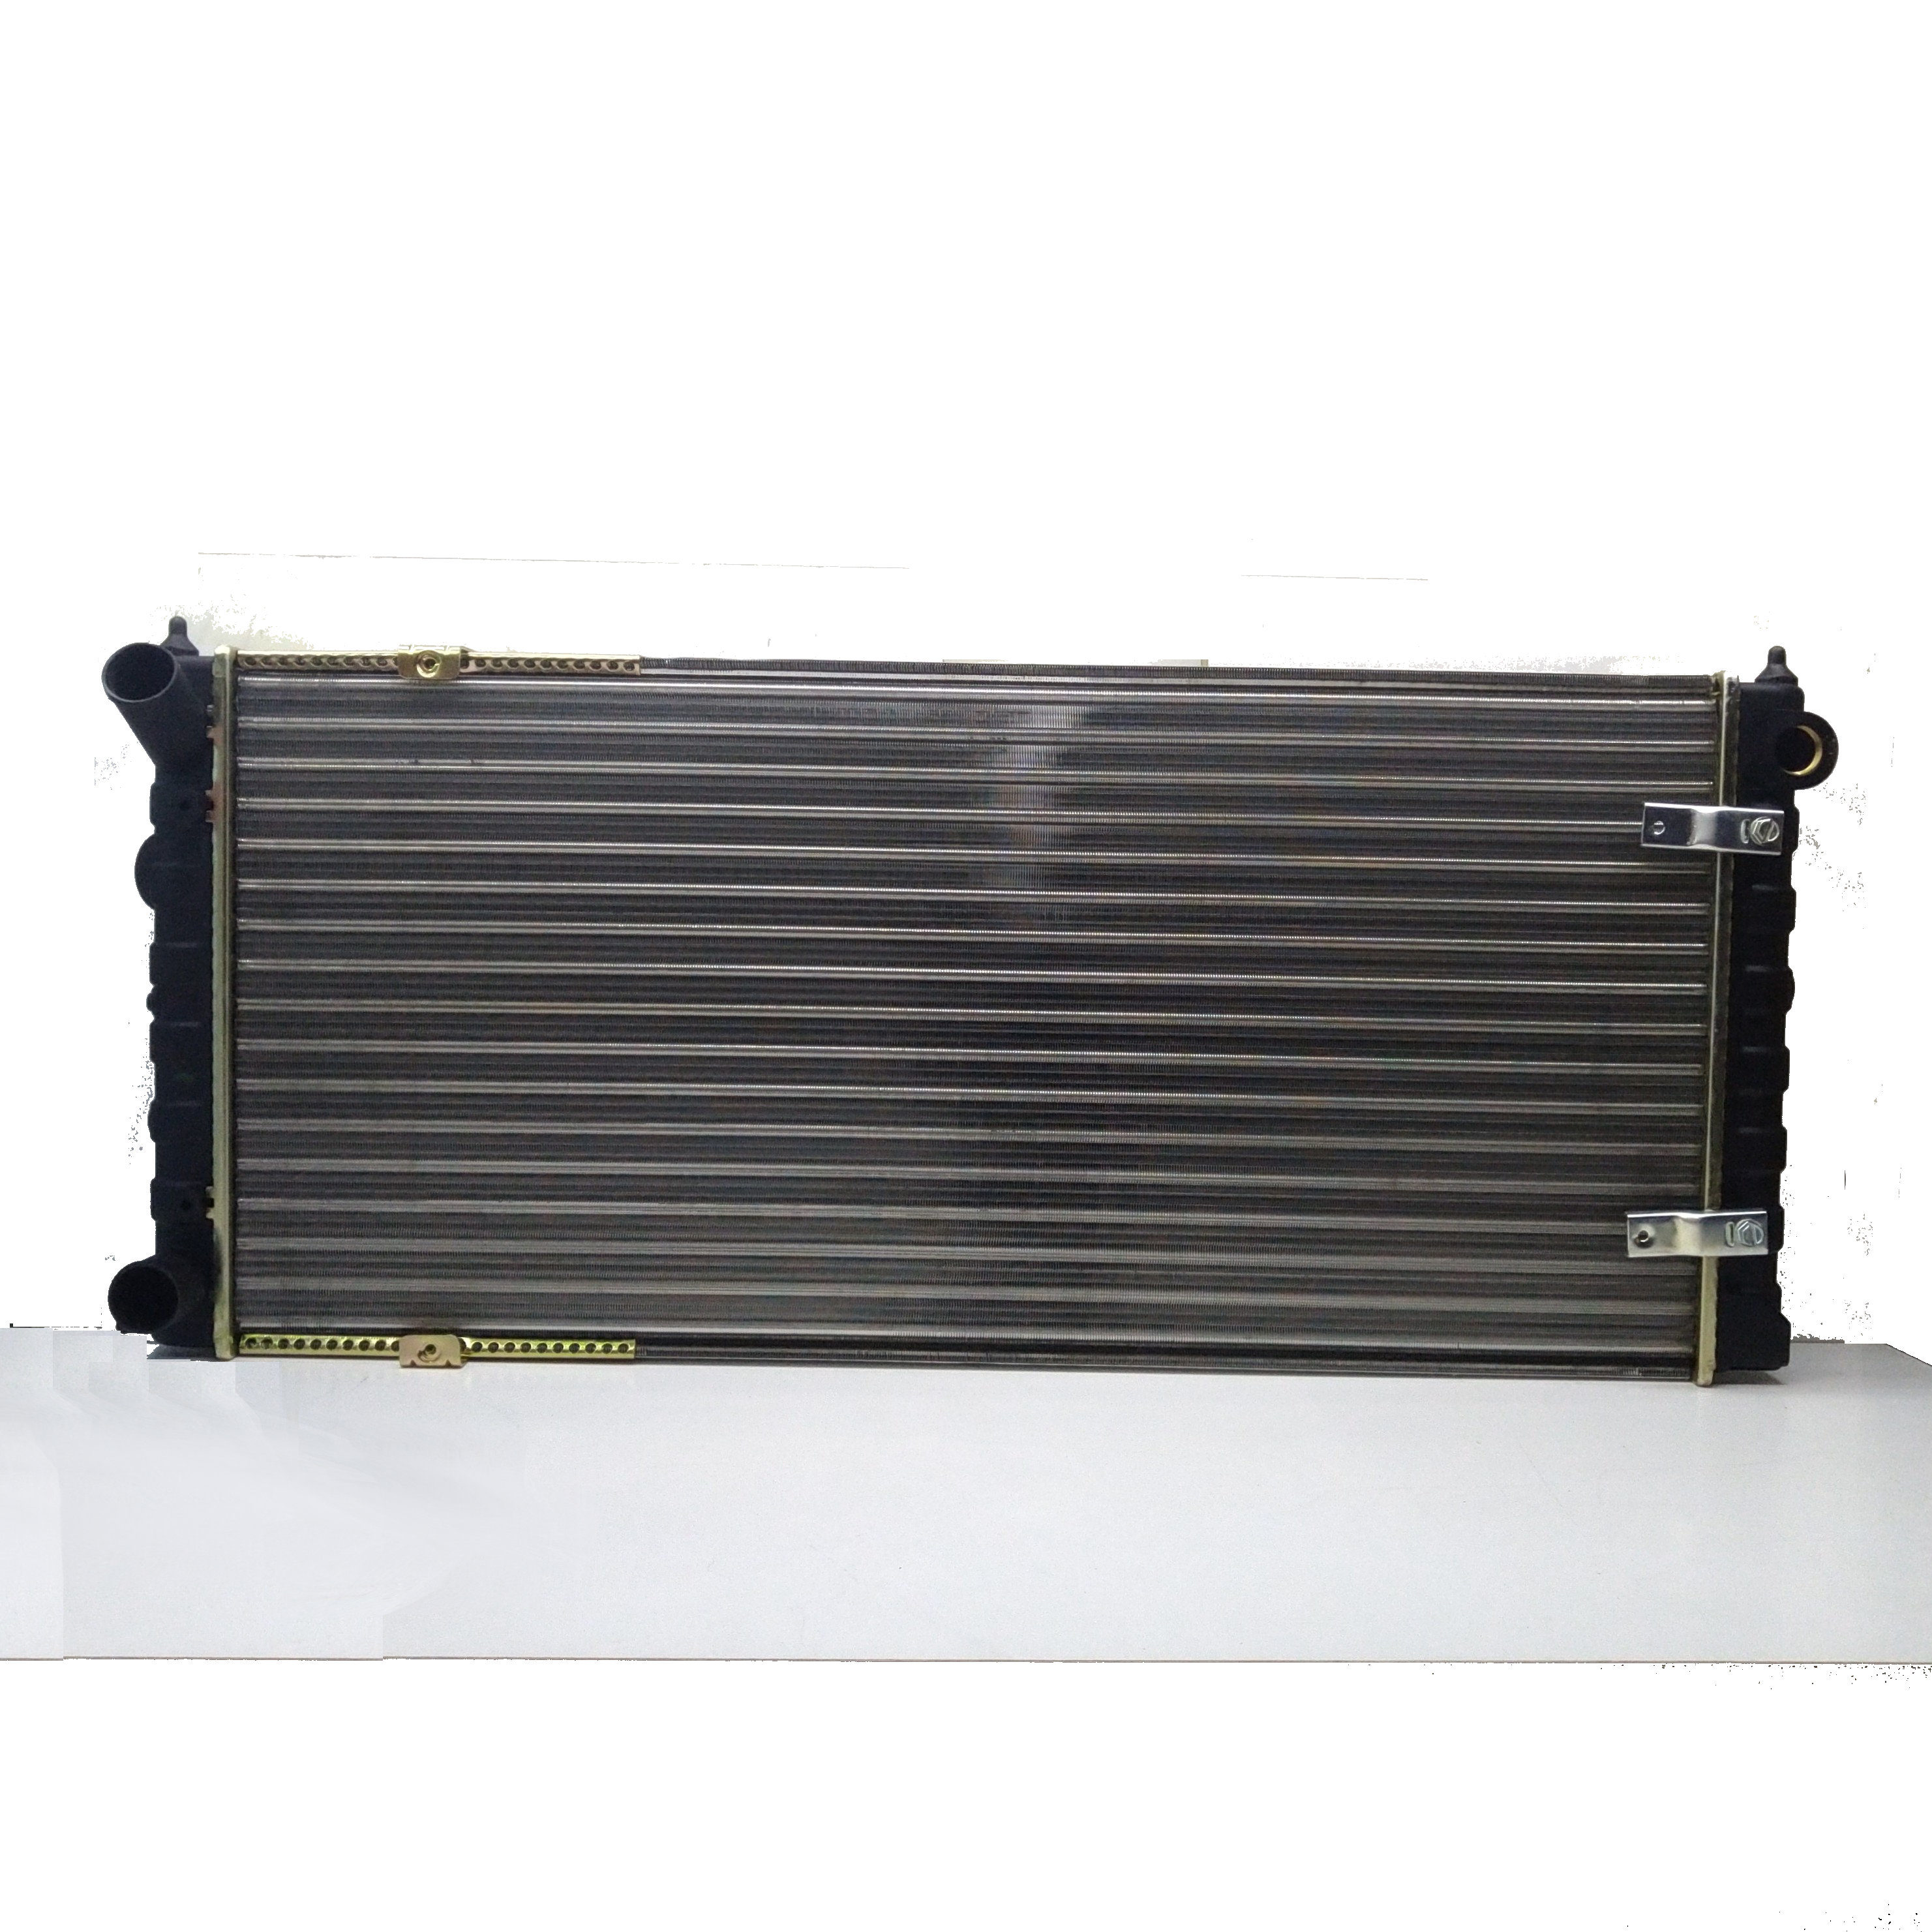 VW GOLF - SCIROCCO - JETTA ENGINE COOLING RADIATOR FOR 191121251C